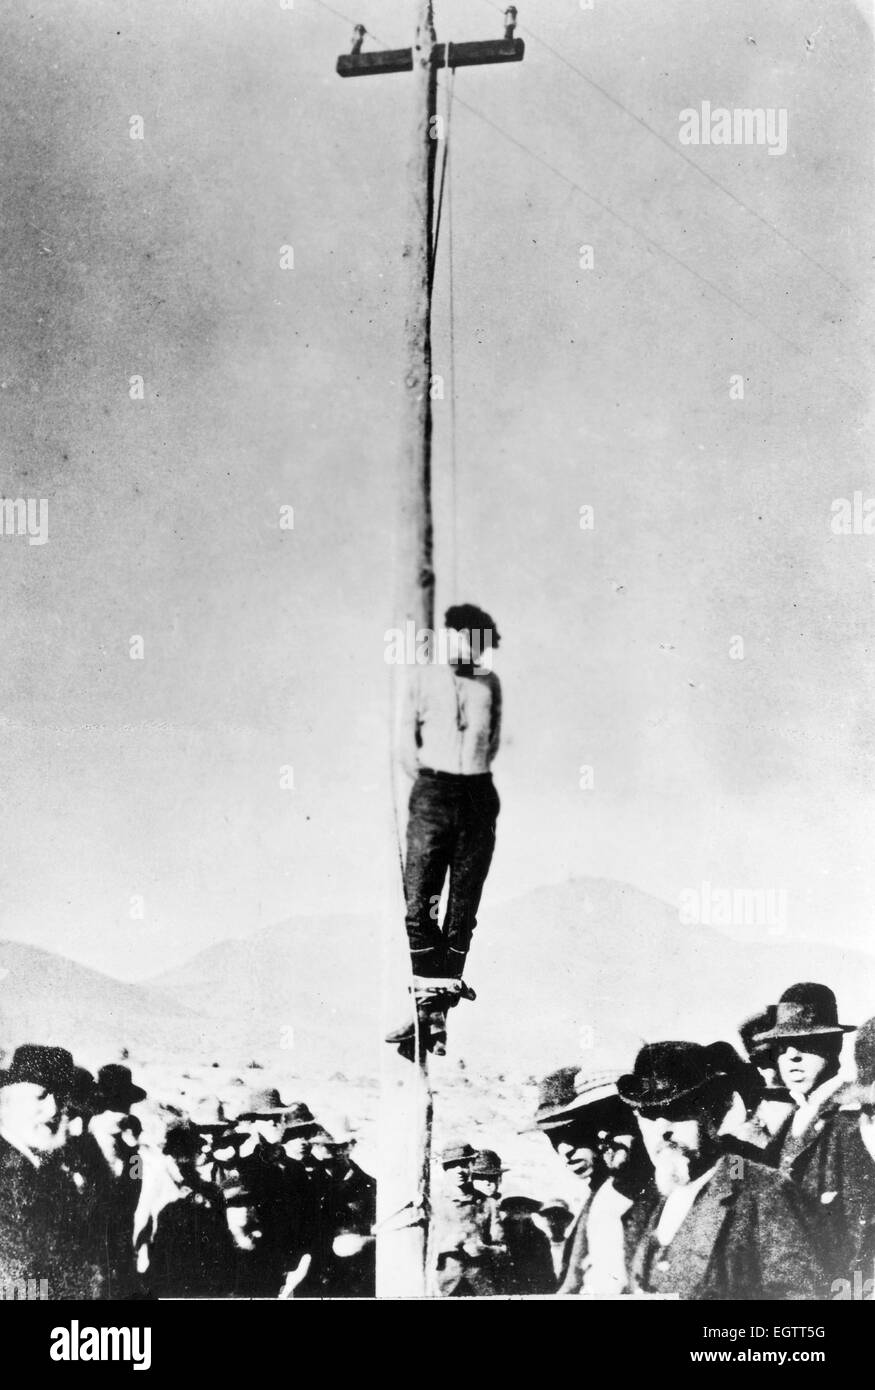 John Heath, lynched on Feb. 22, 1884, by infuriated citizens in Arizona - Stock Image